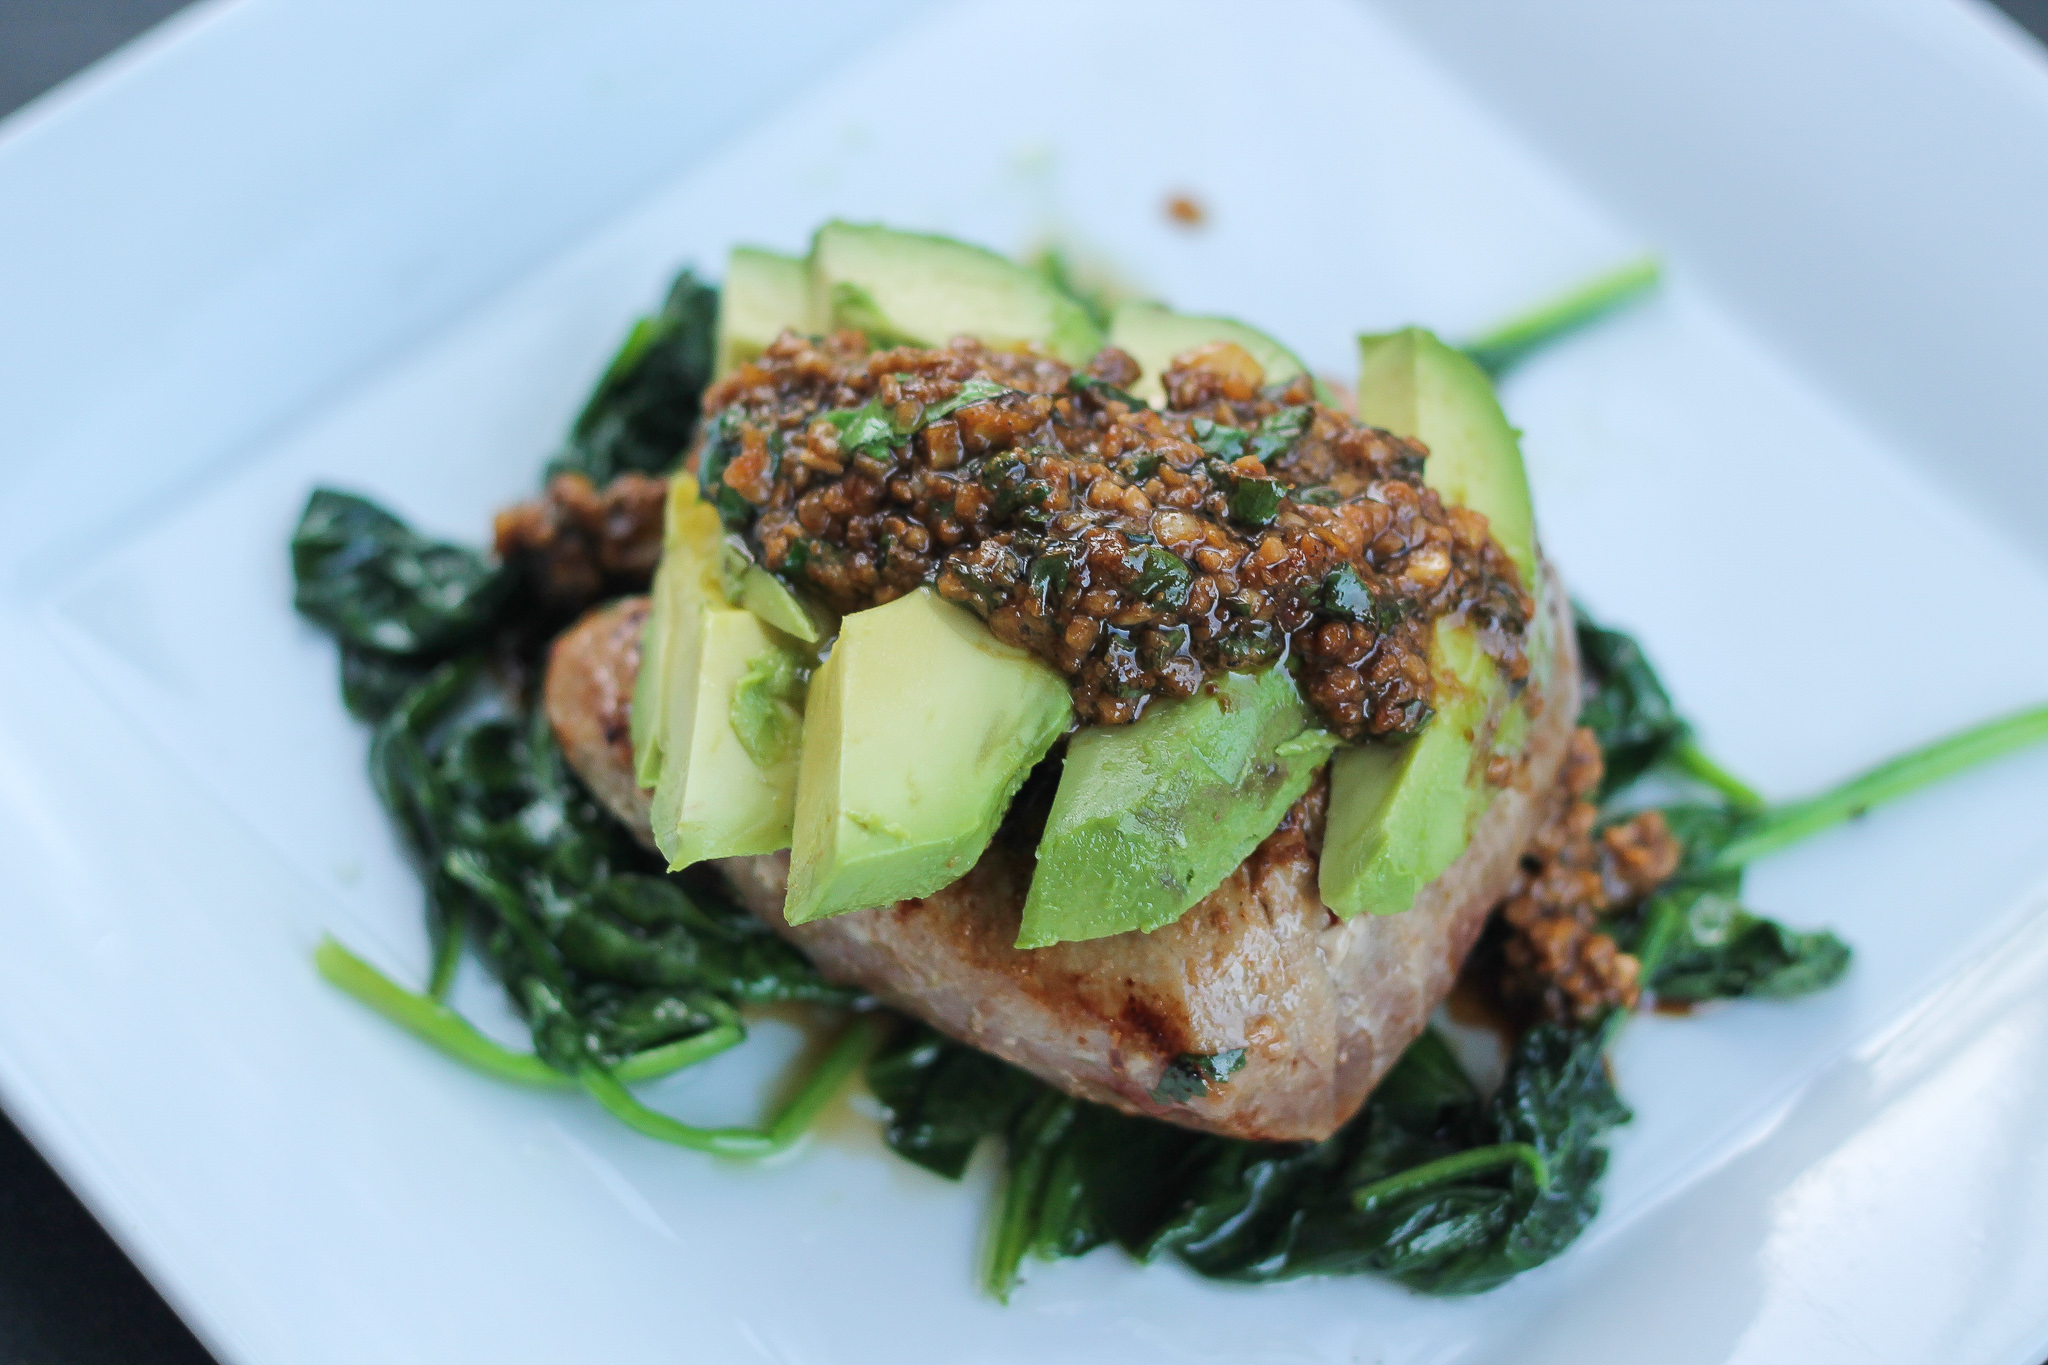 Grilled Citrus Tuna Steak with Avocado & Spinach